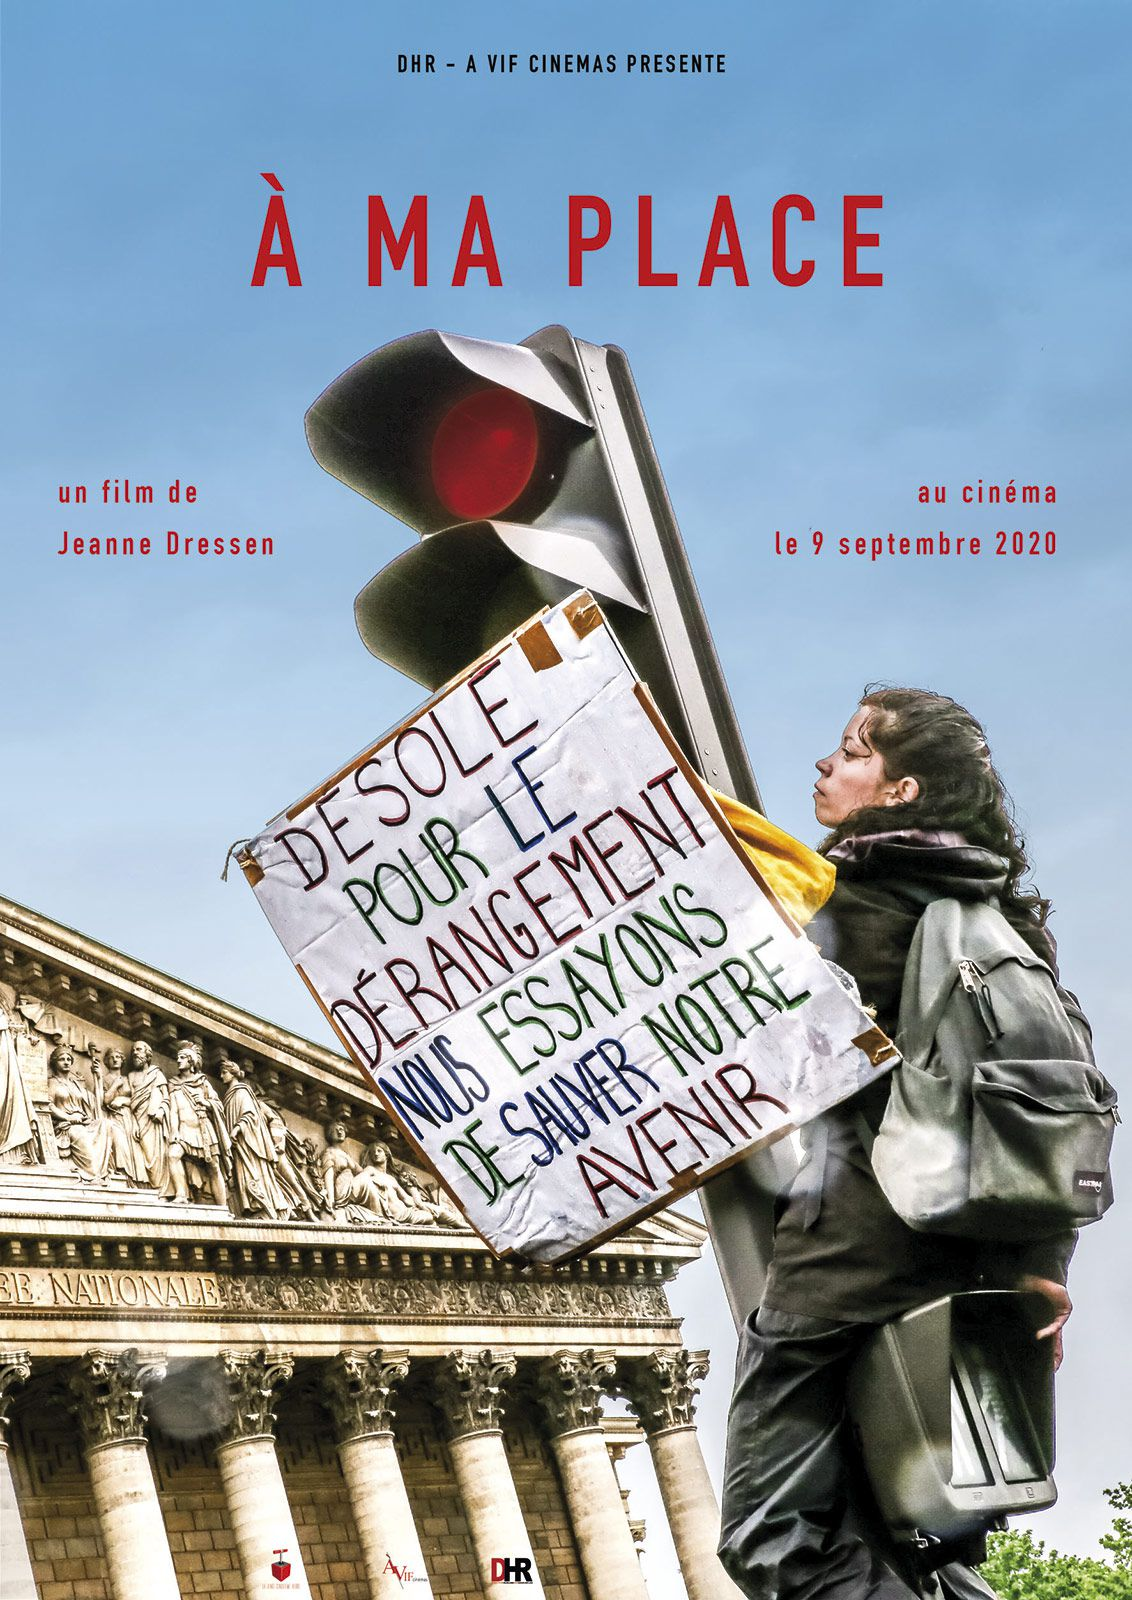 À ma place - Documentaire (2020) streaming VF gratuit complet